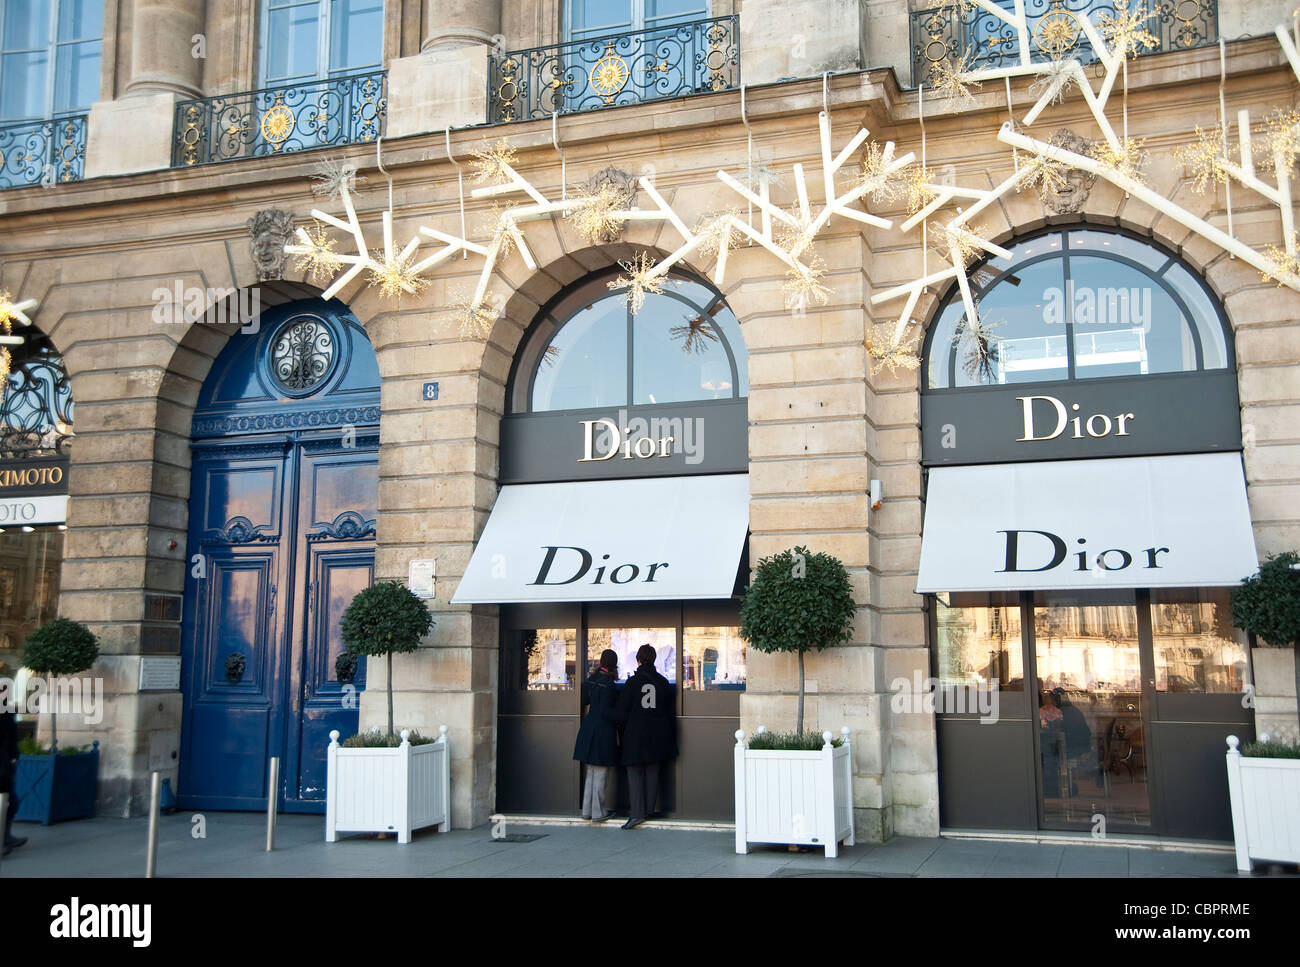 dior store windows stock photos dior store windows stock images alamy. Black Bedroom Furniture Sets. Home Design Ideas